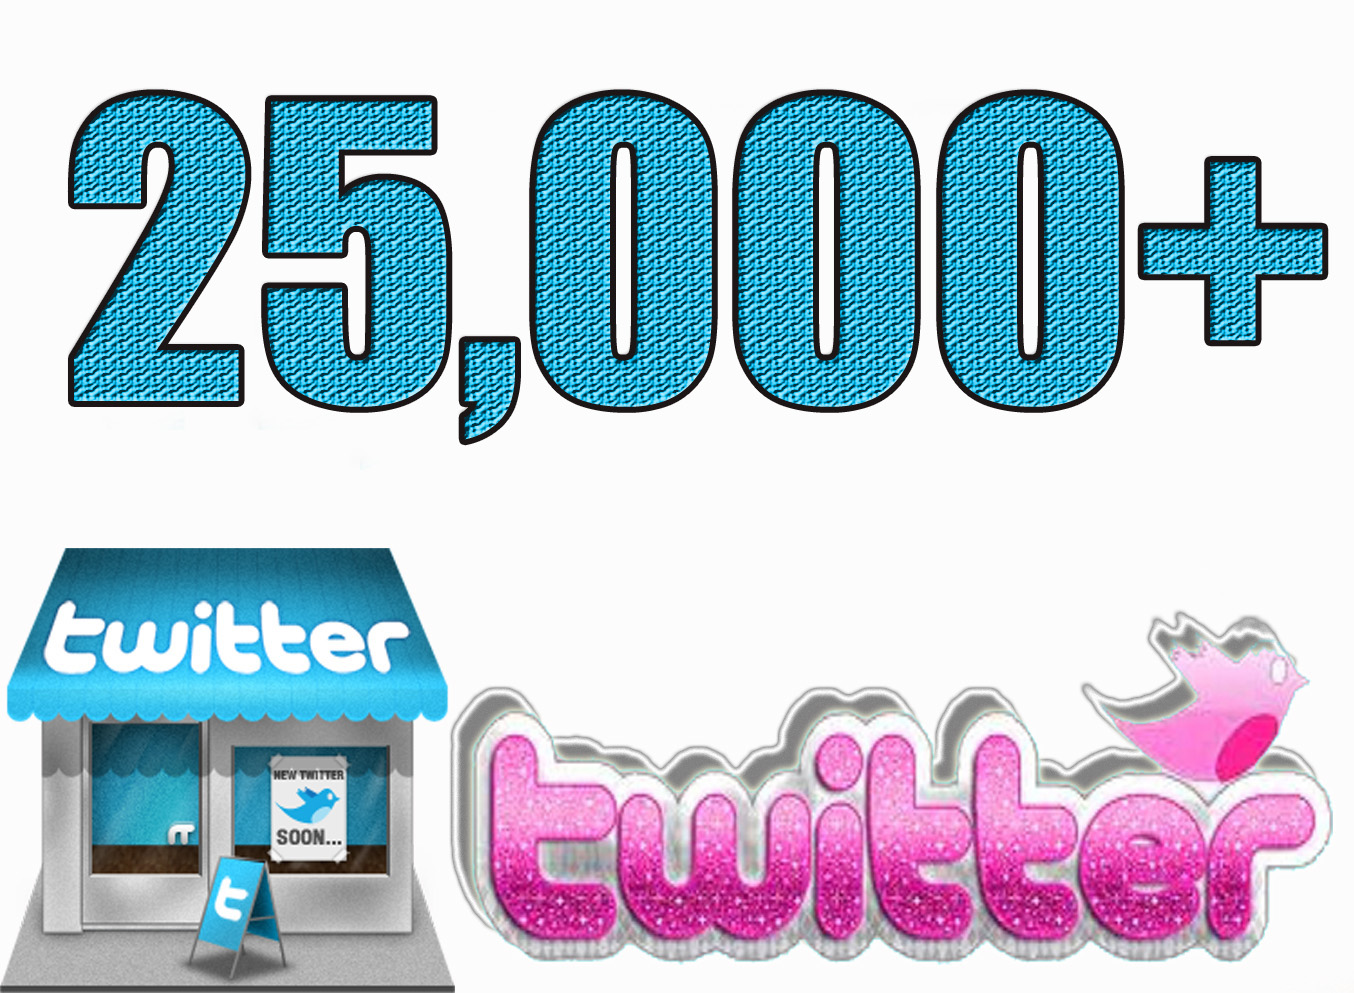 Provide 25,000 Solid Twitter Followers